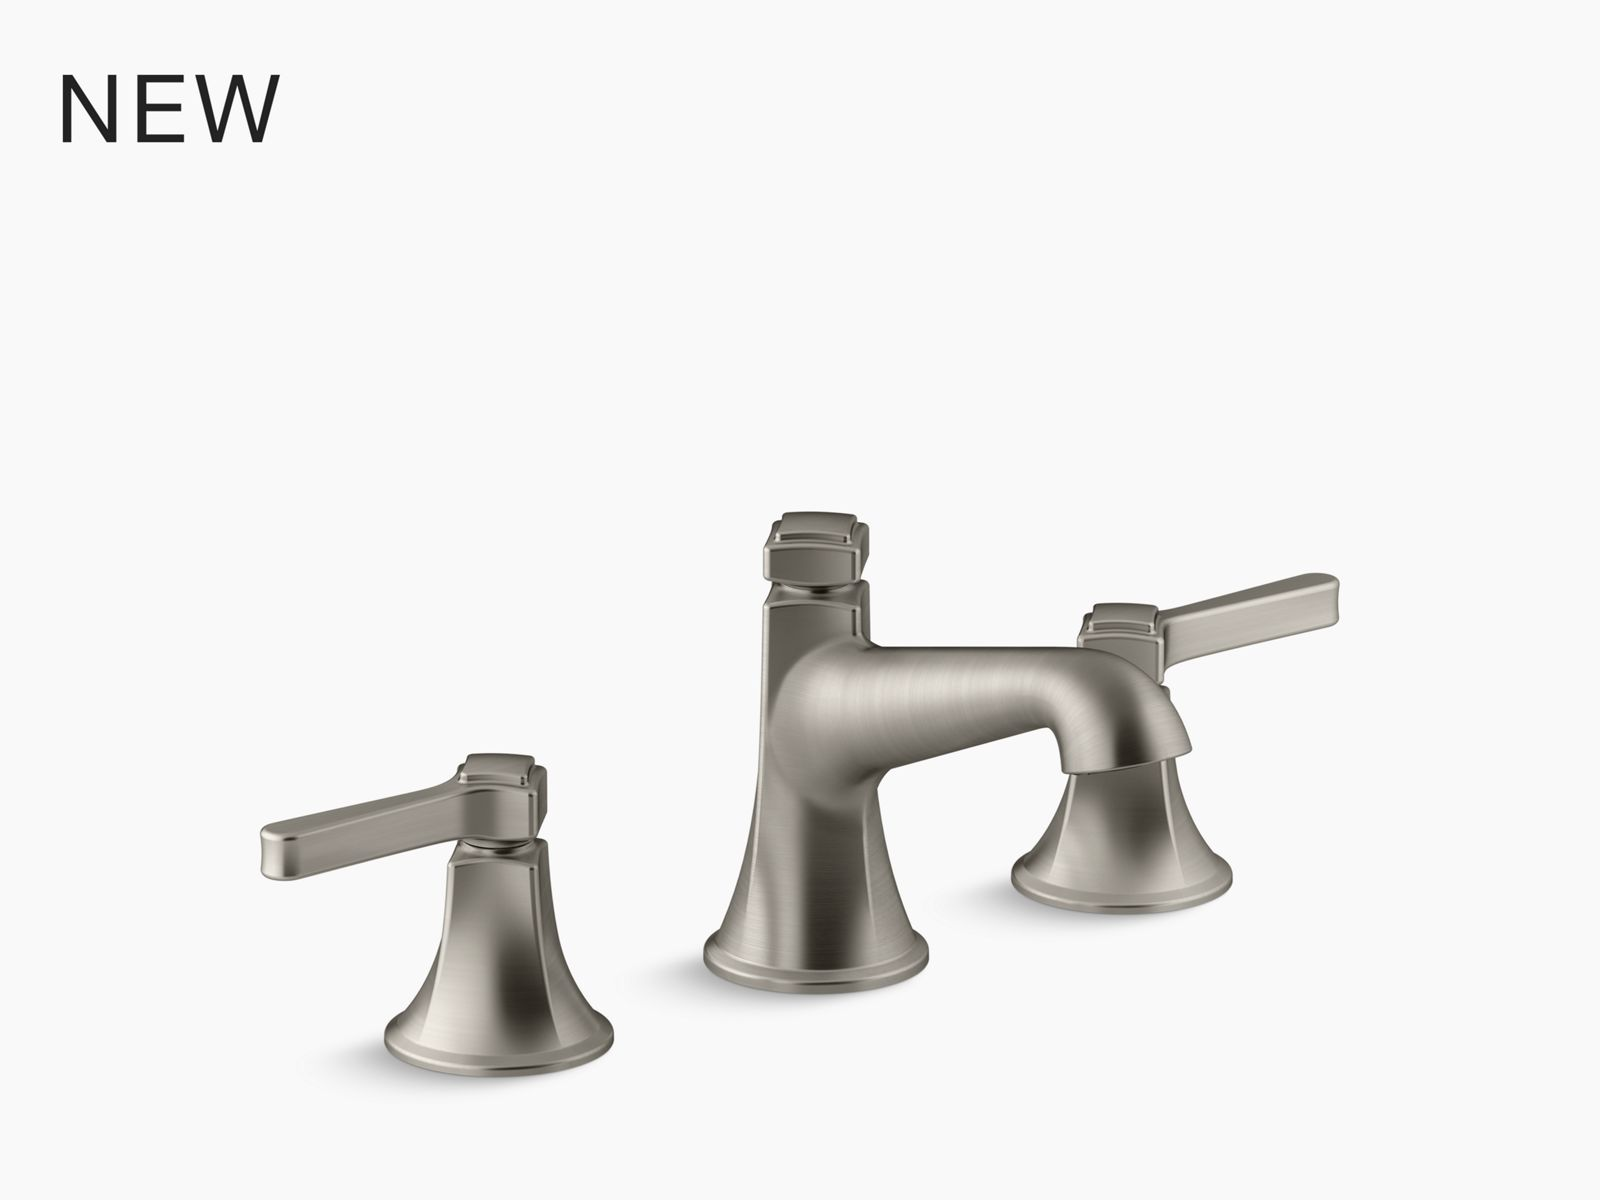 8 widespread lavatory faucet 16232t